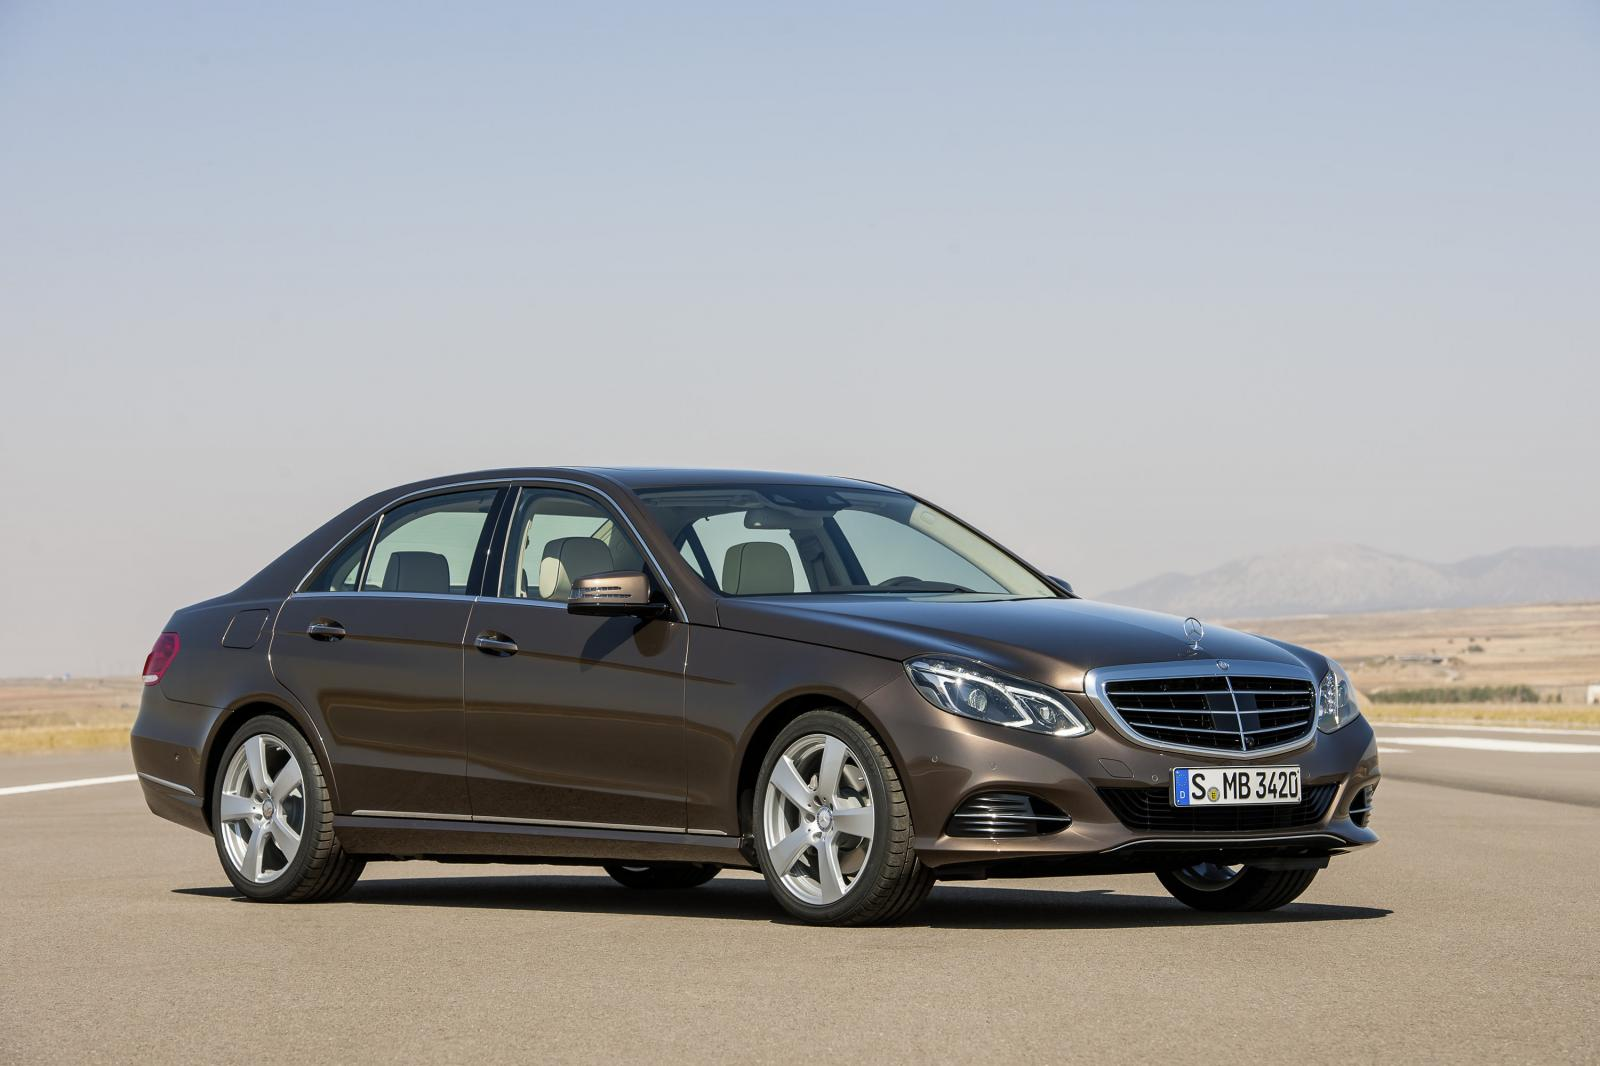 2014 mercedes benz e class facelift revealed photo for Mercedes benz 2014